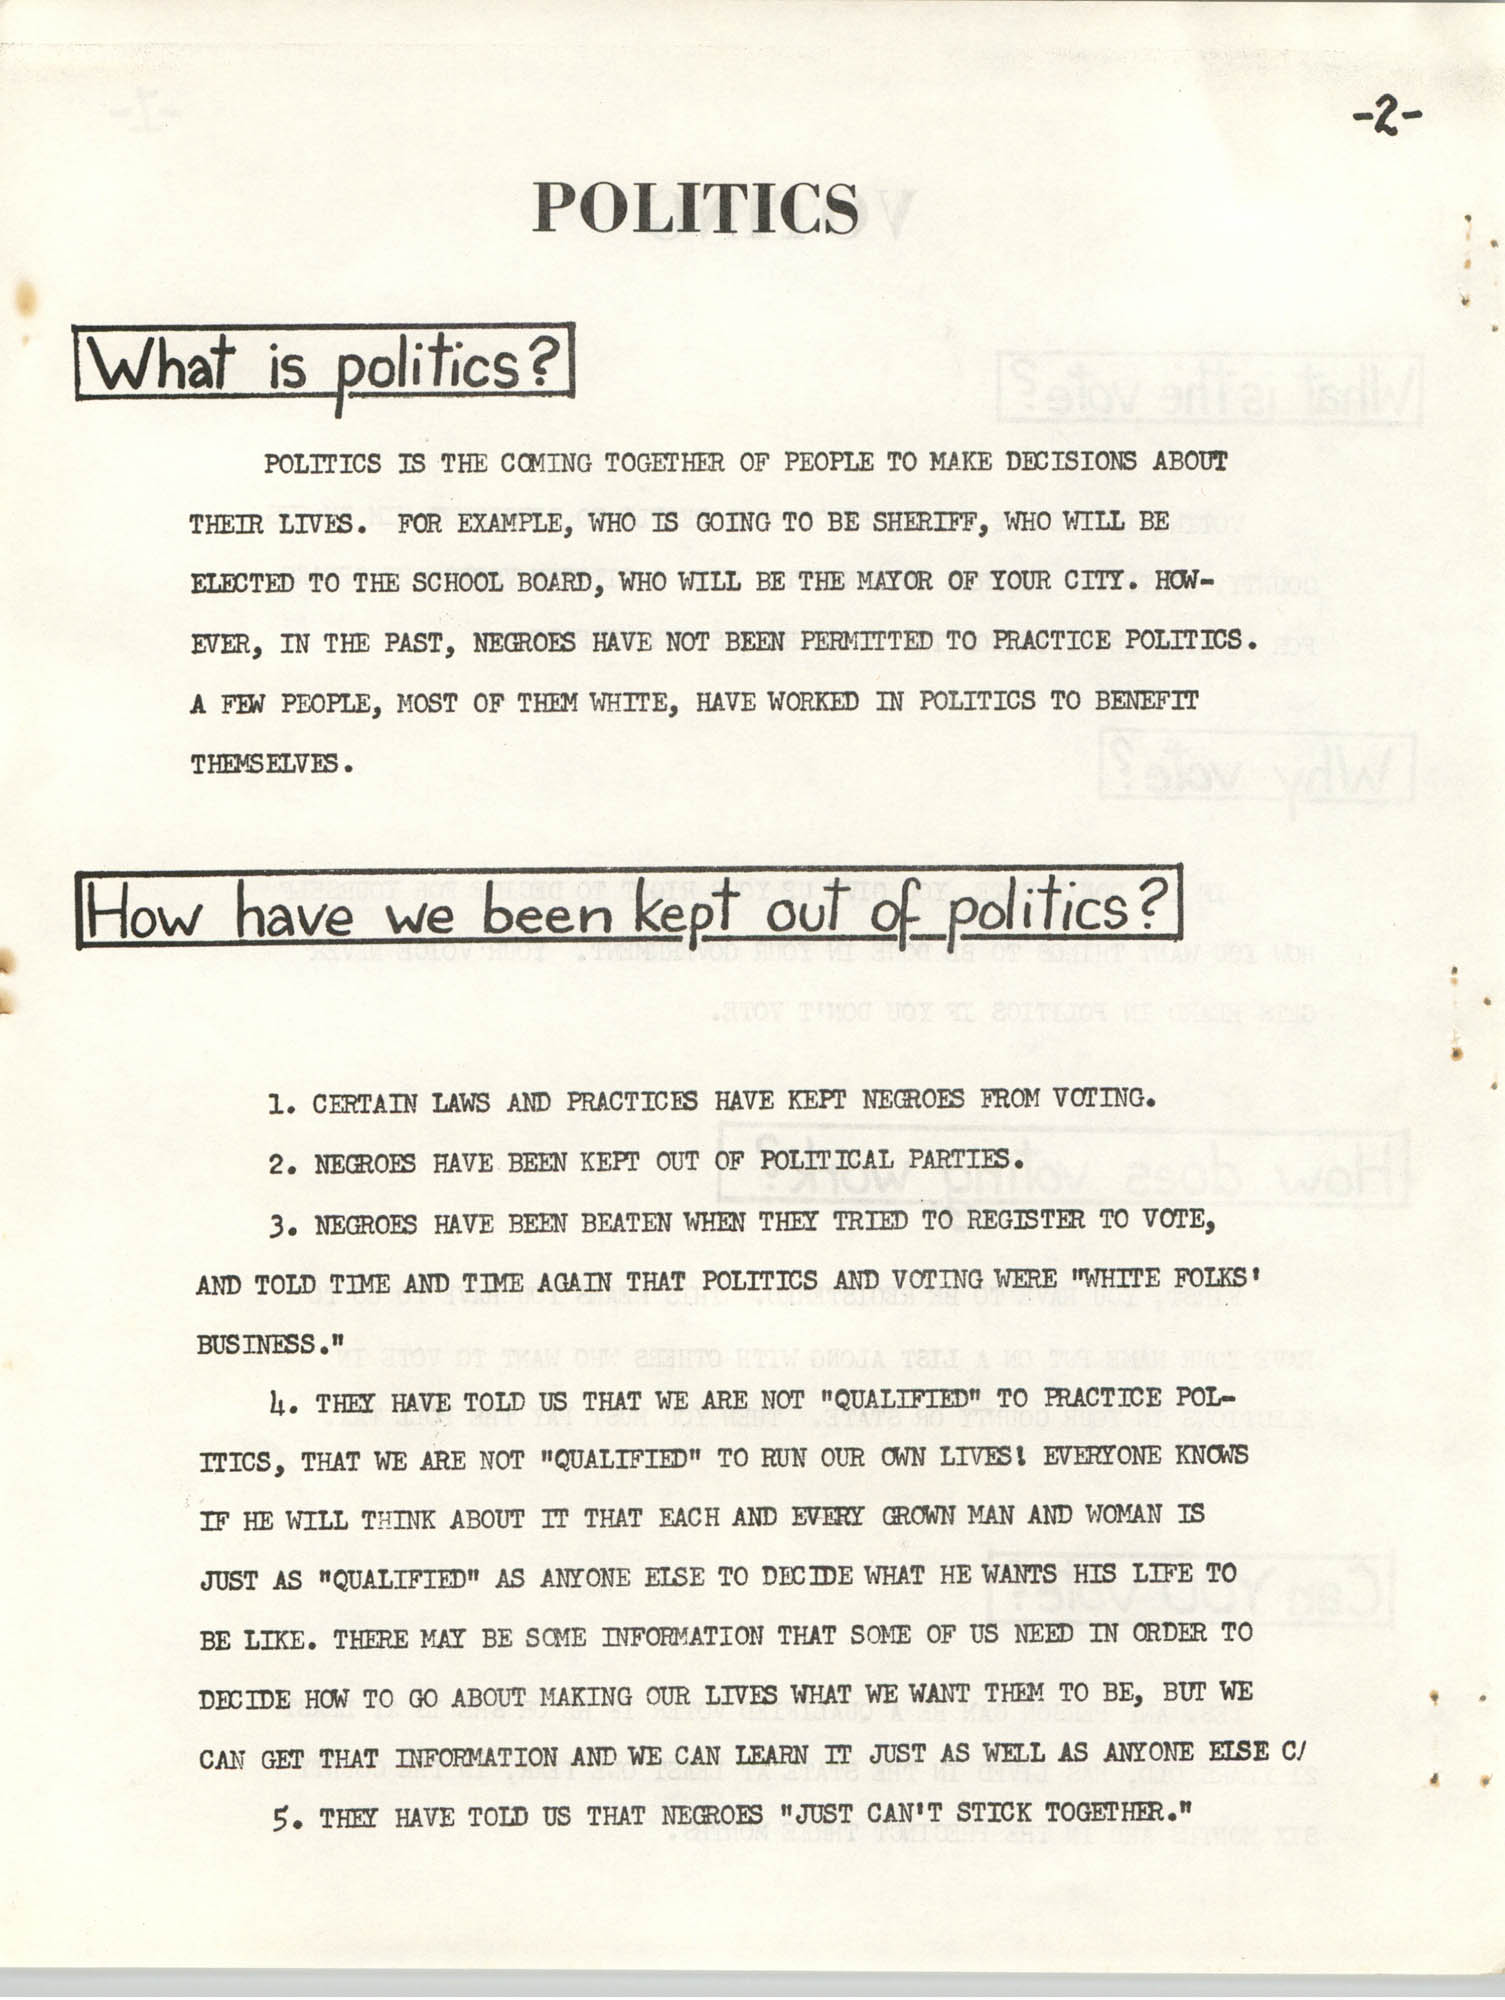 Lowndes County Freedom Organization Voting Pamphlet, Page 4